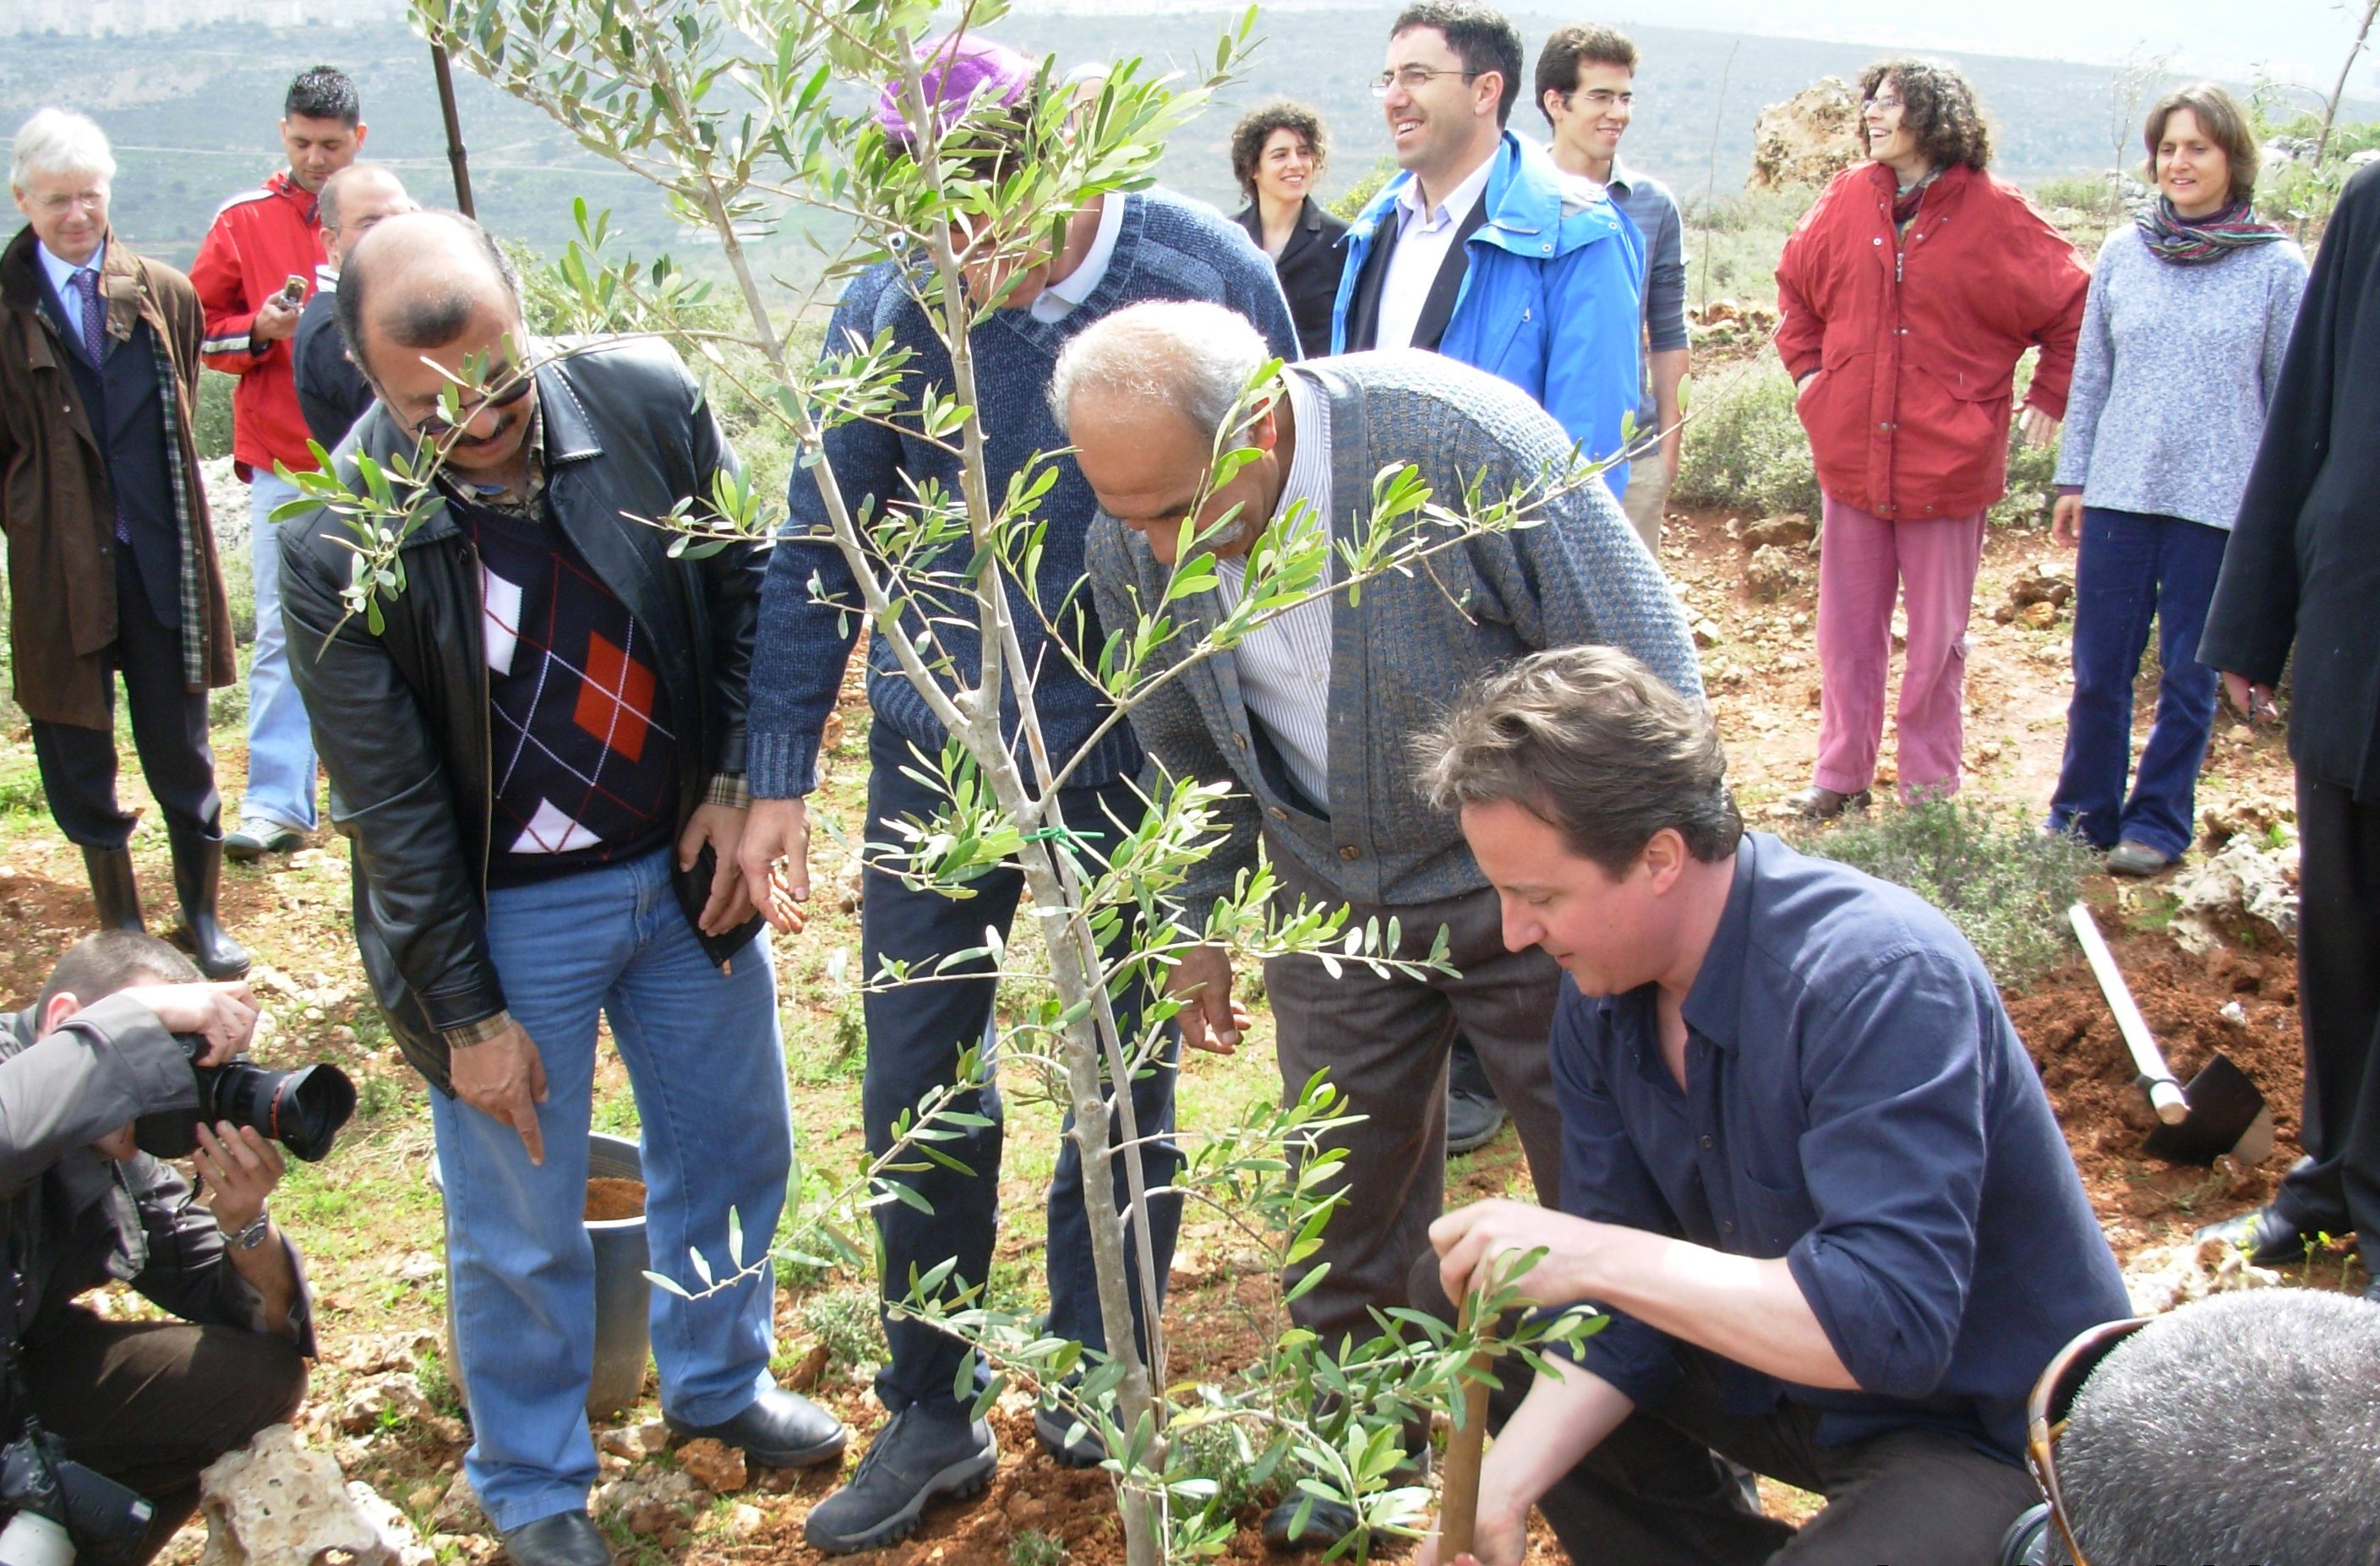 UK David Cameron planting tree on Green Line at Wadi Fukin, Palestine